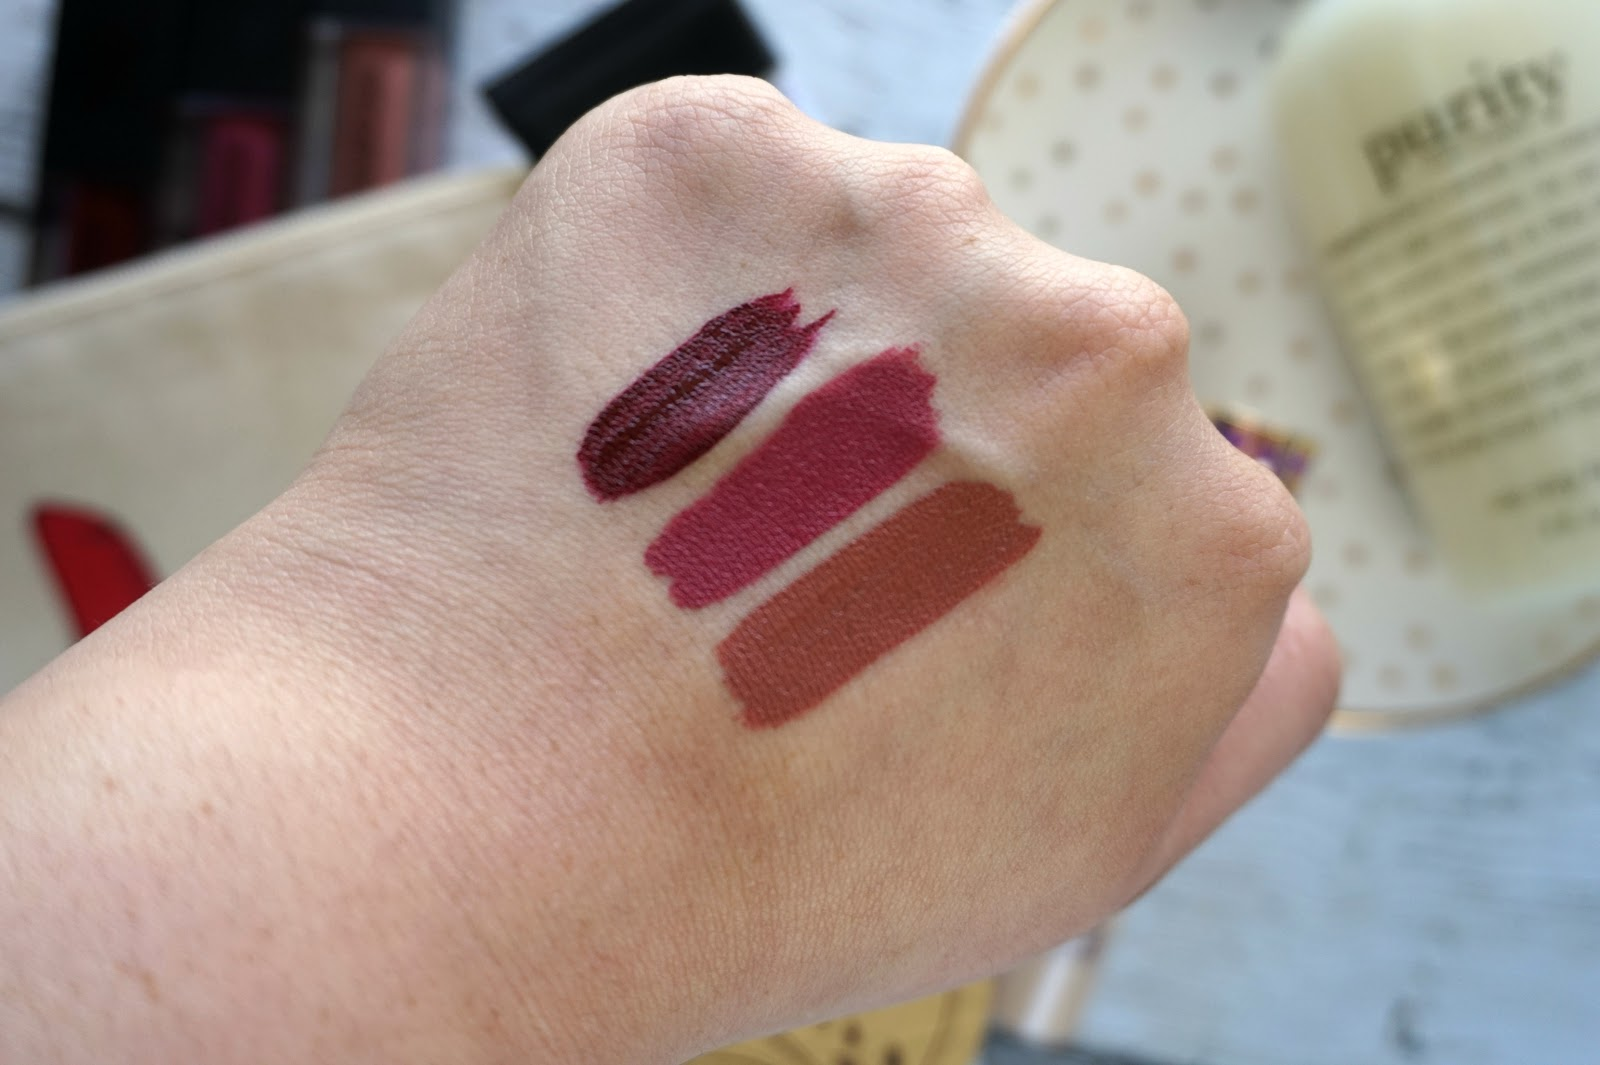 Smashbox Always On Liquid Lipstick Swatches // High-End Beauty Products Worth The Splurge // Best High-End Beauty Products   beautywithlily.com